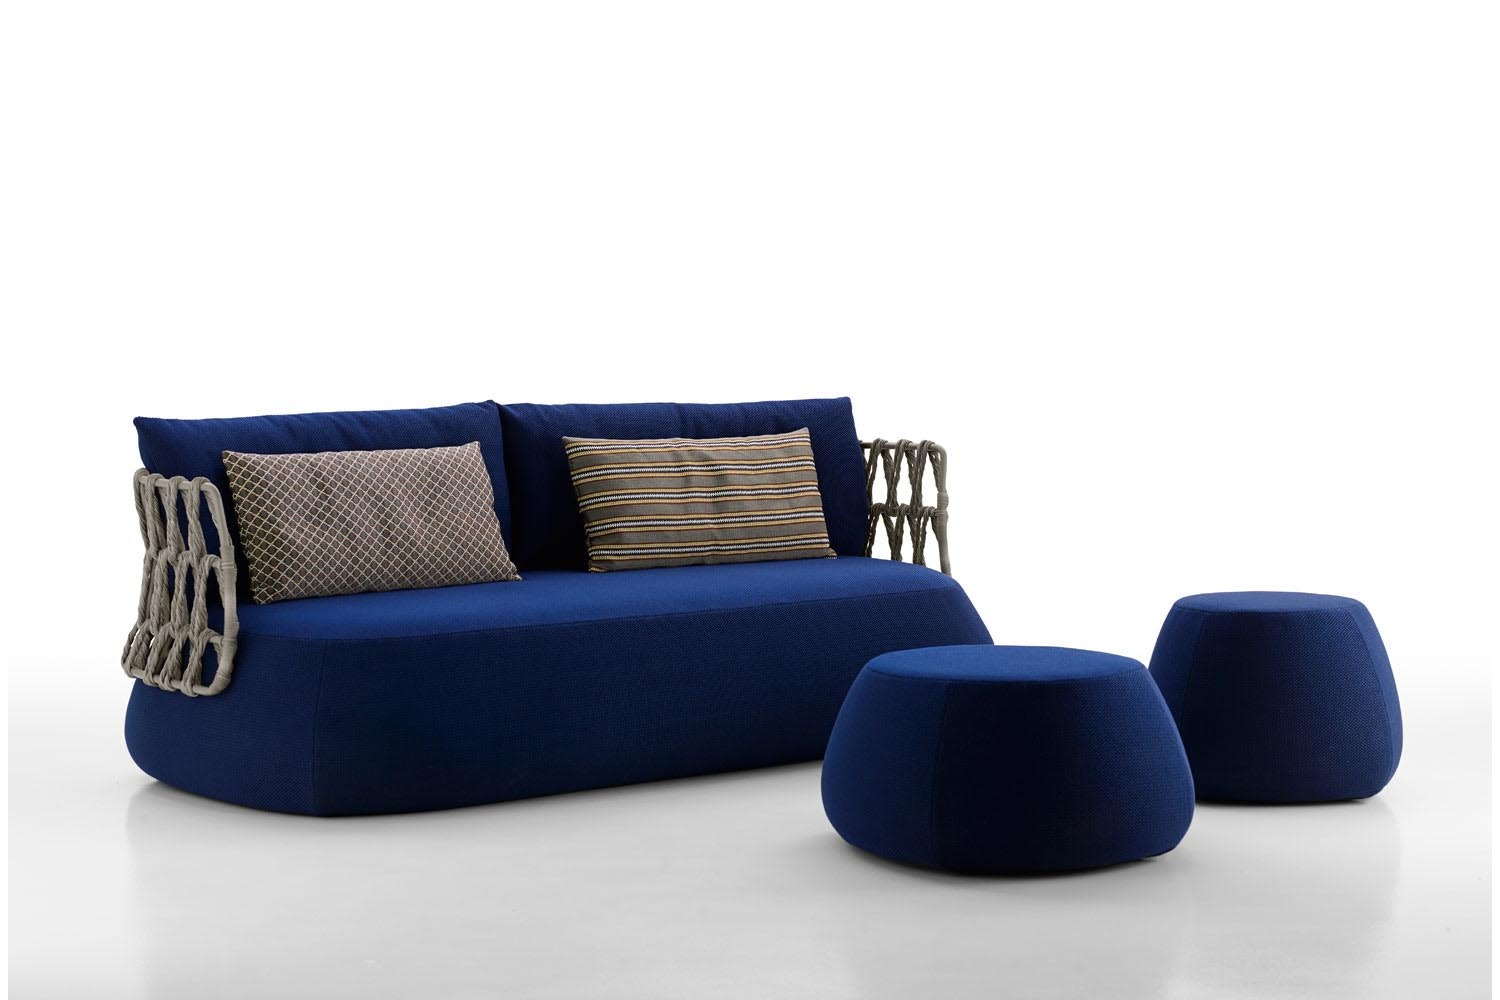 Fat-Sofa Outdoor by Patricia Urquiola for B&B Italia